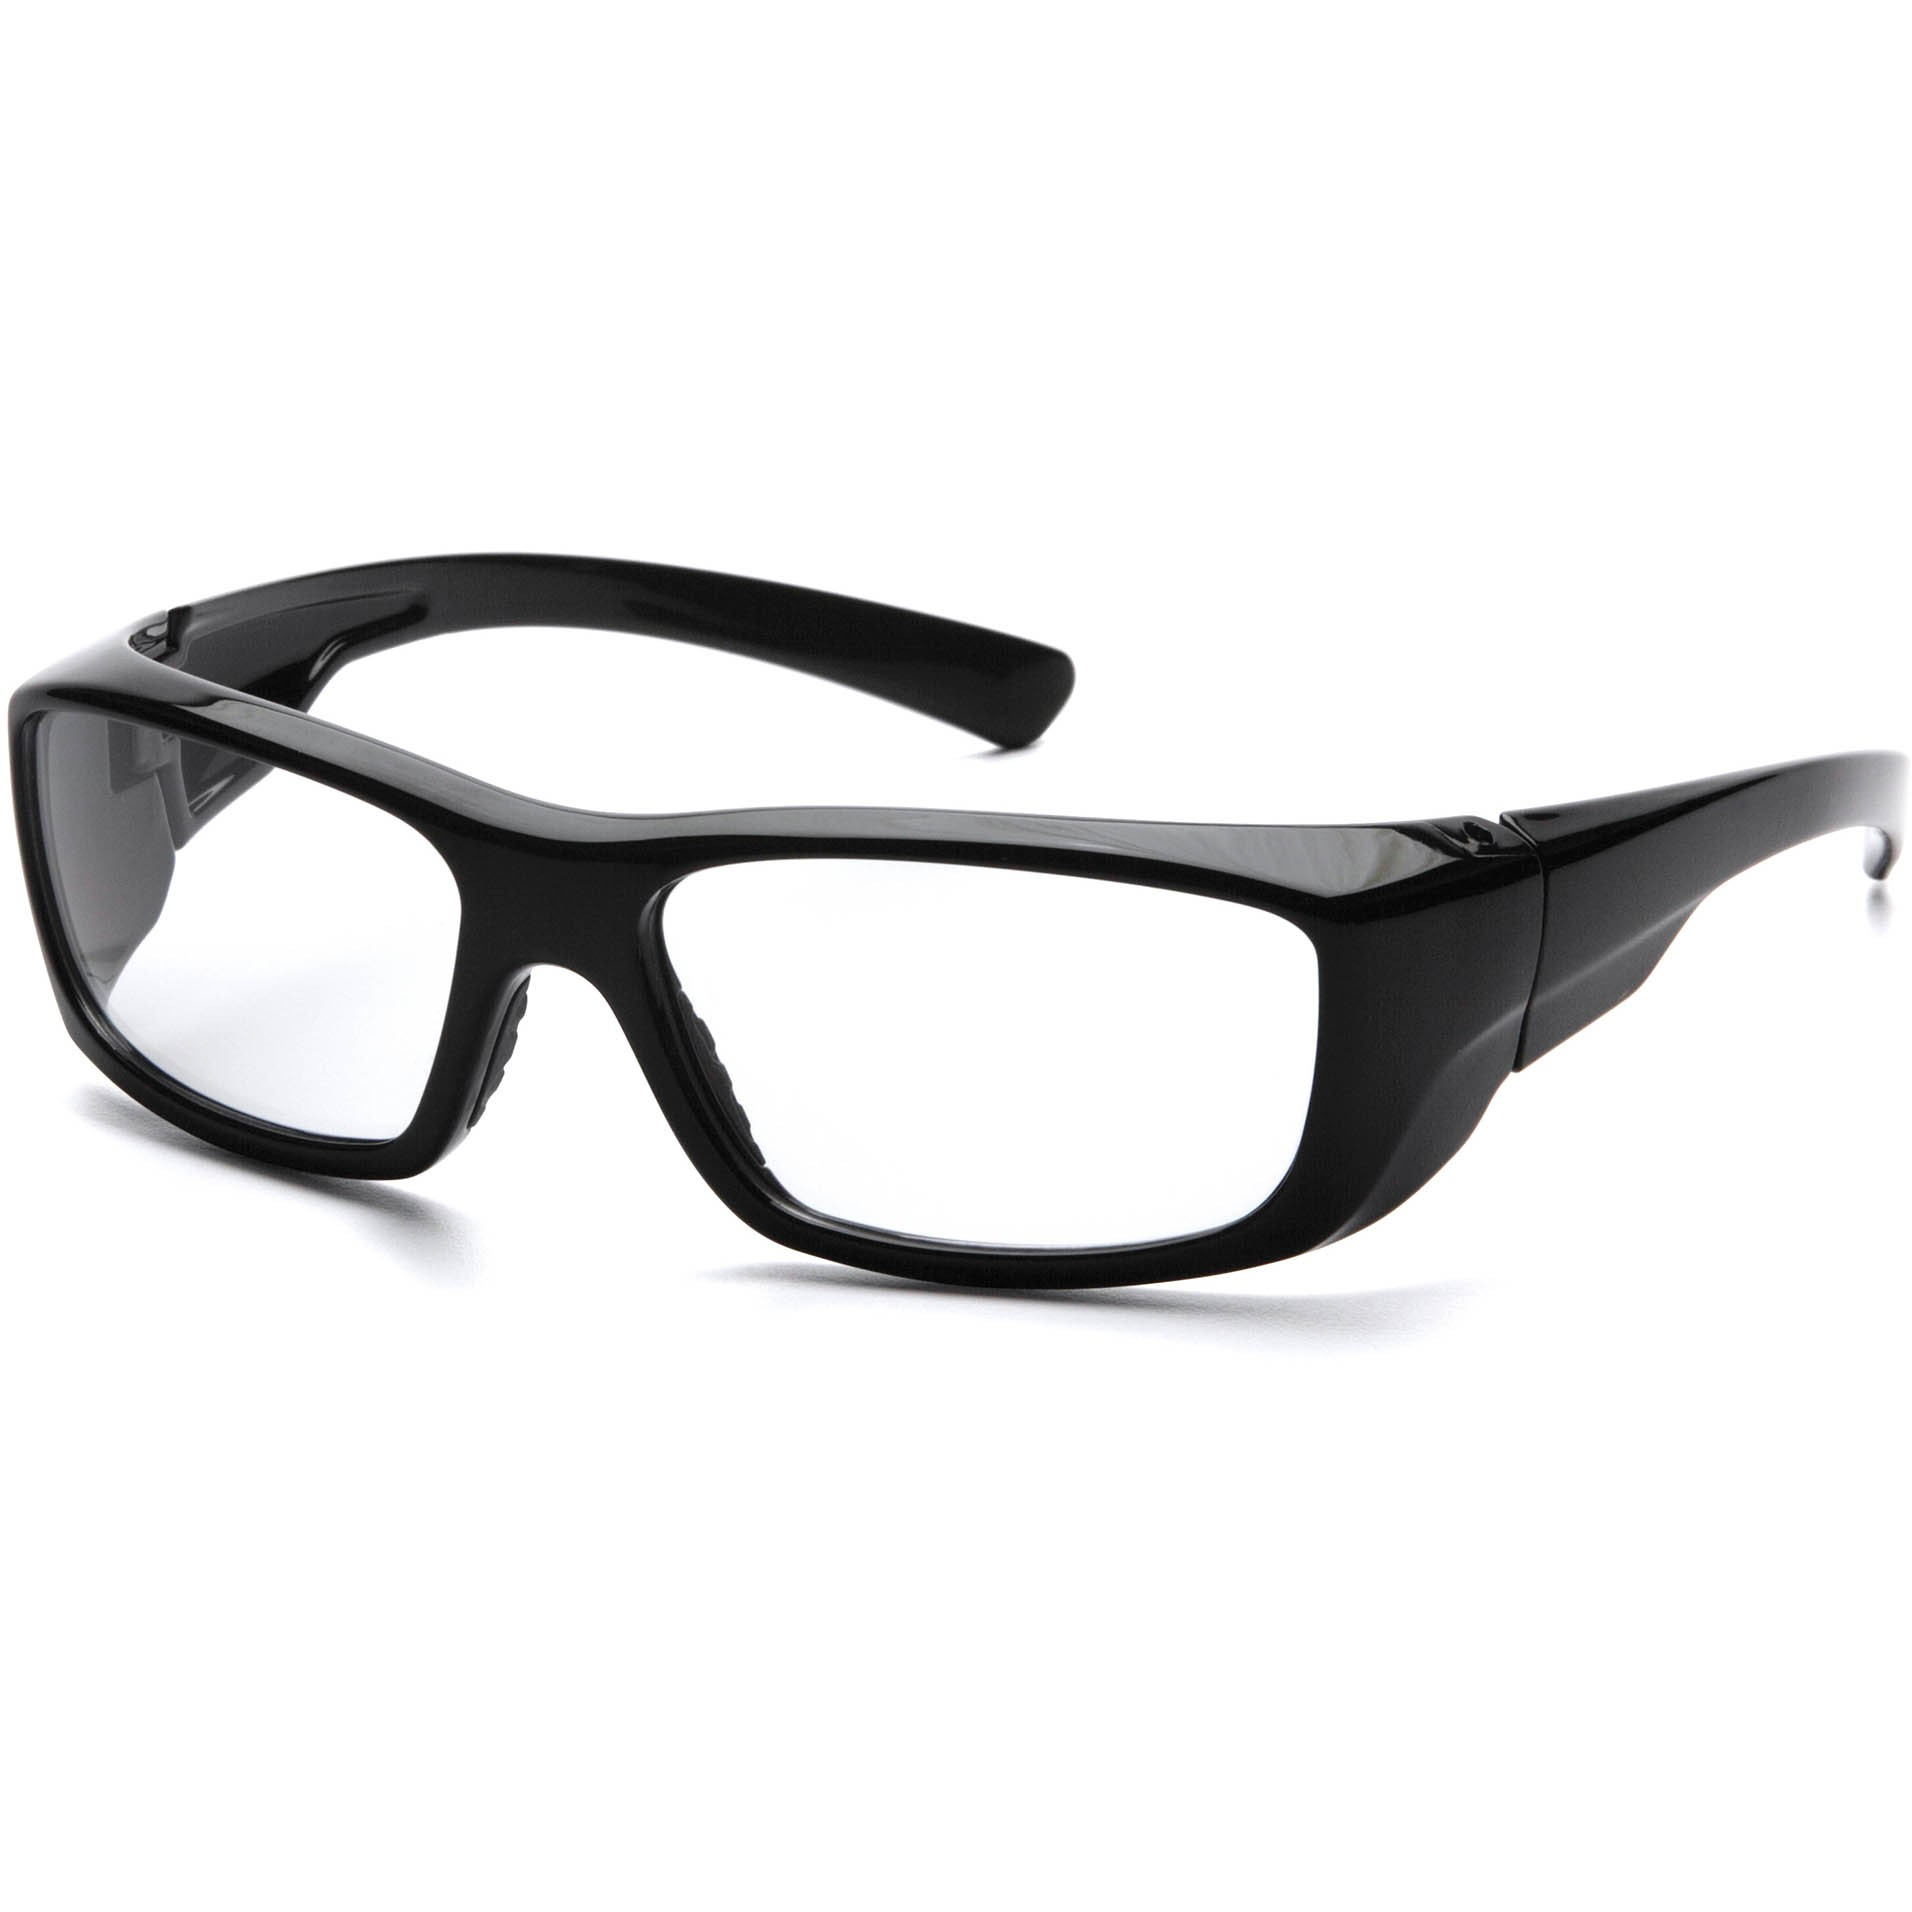 Black Frame Glasses Clear Lens : Pyramex Emerge Safety Glasses - Black Frame - Clear Full ...